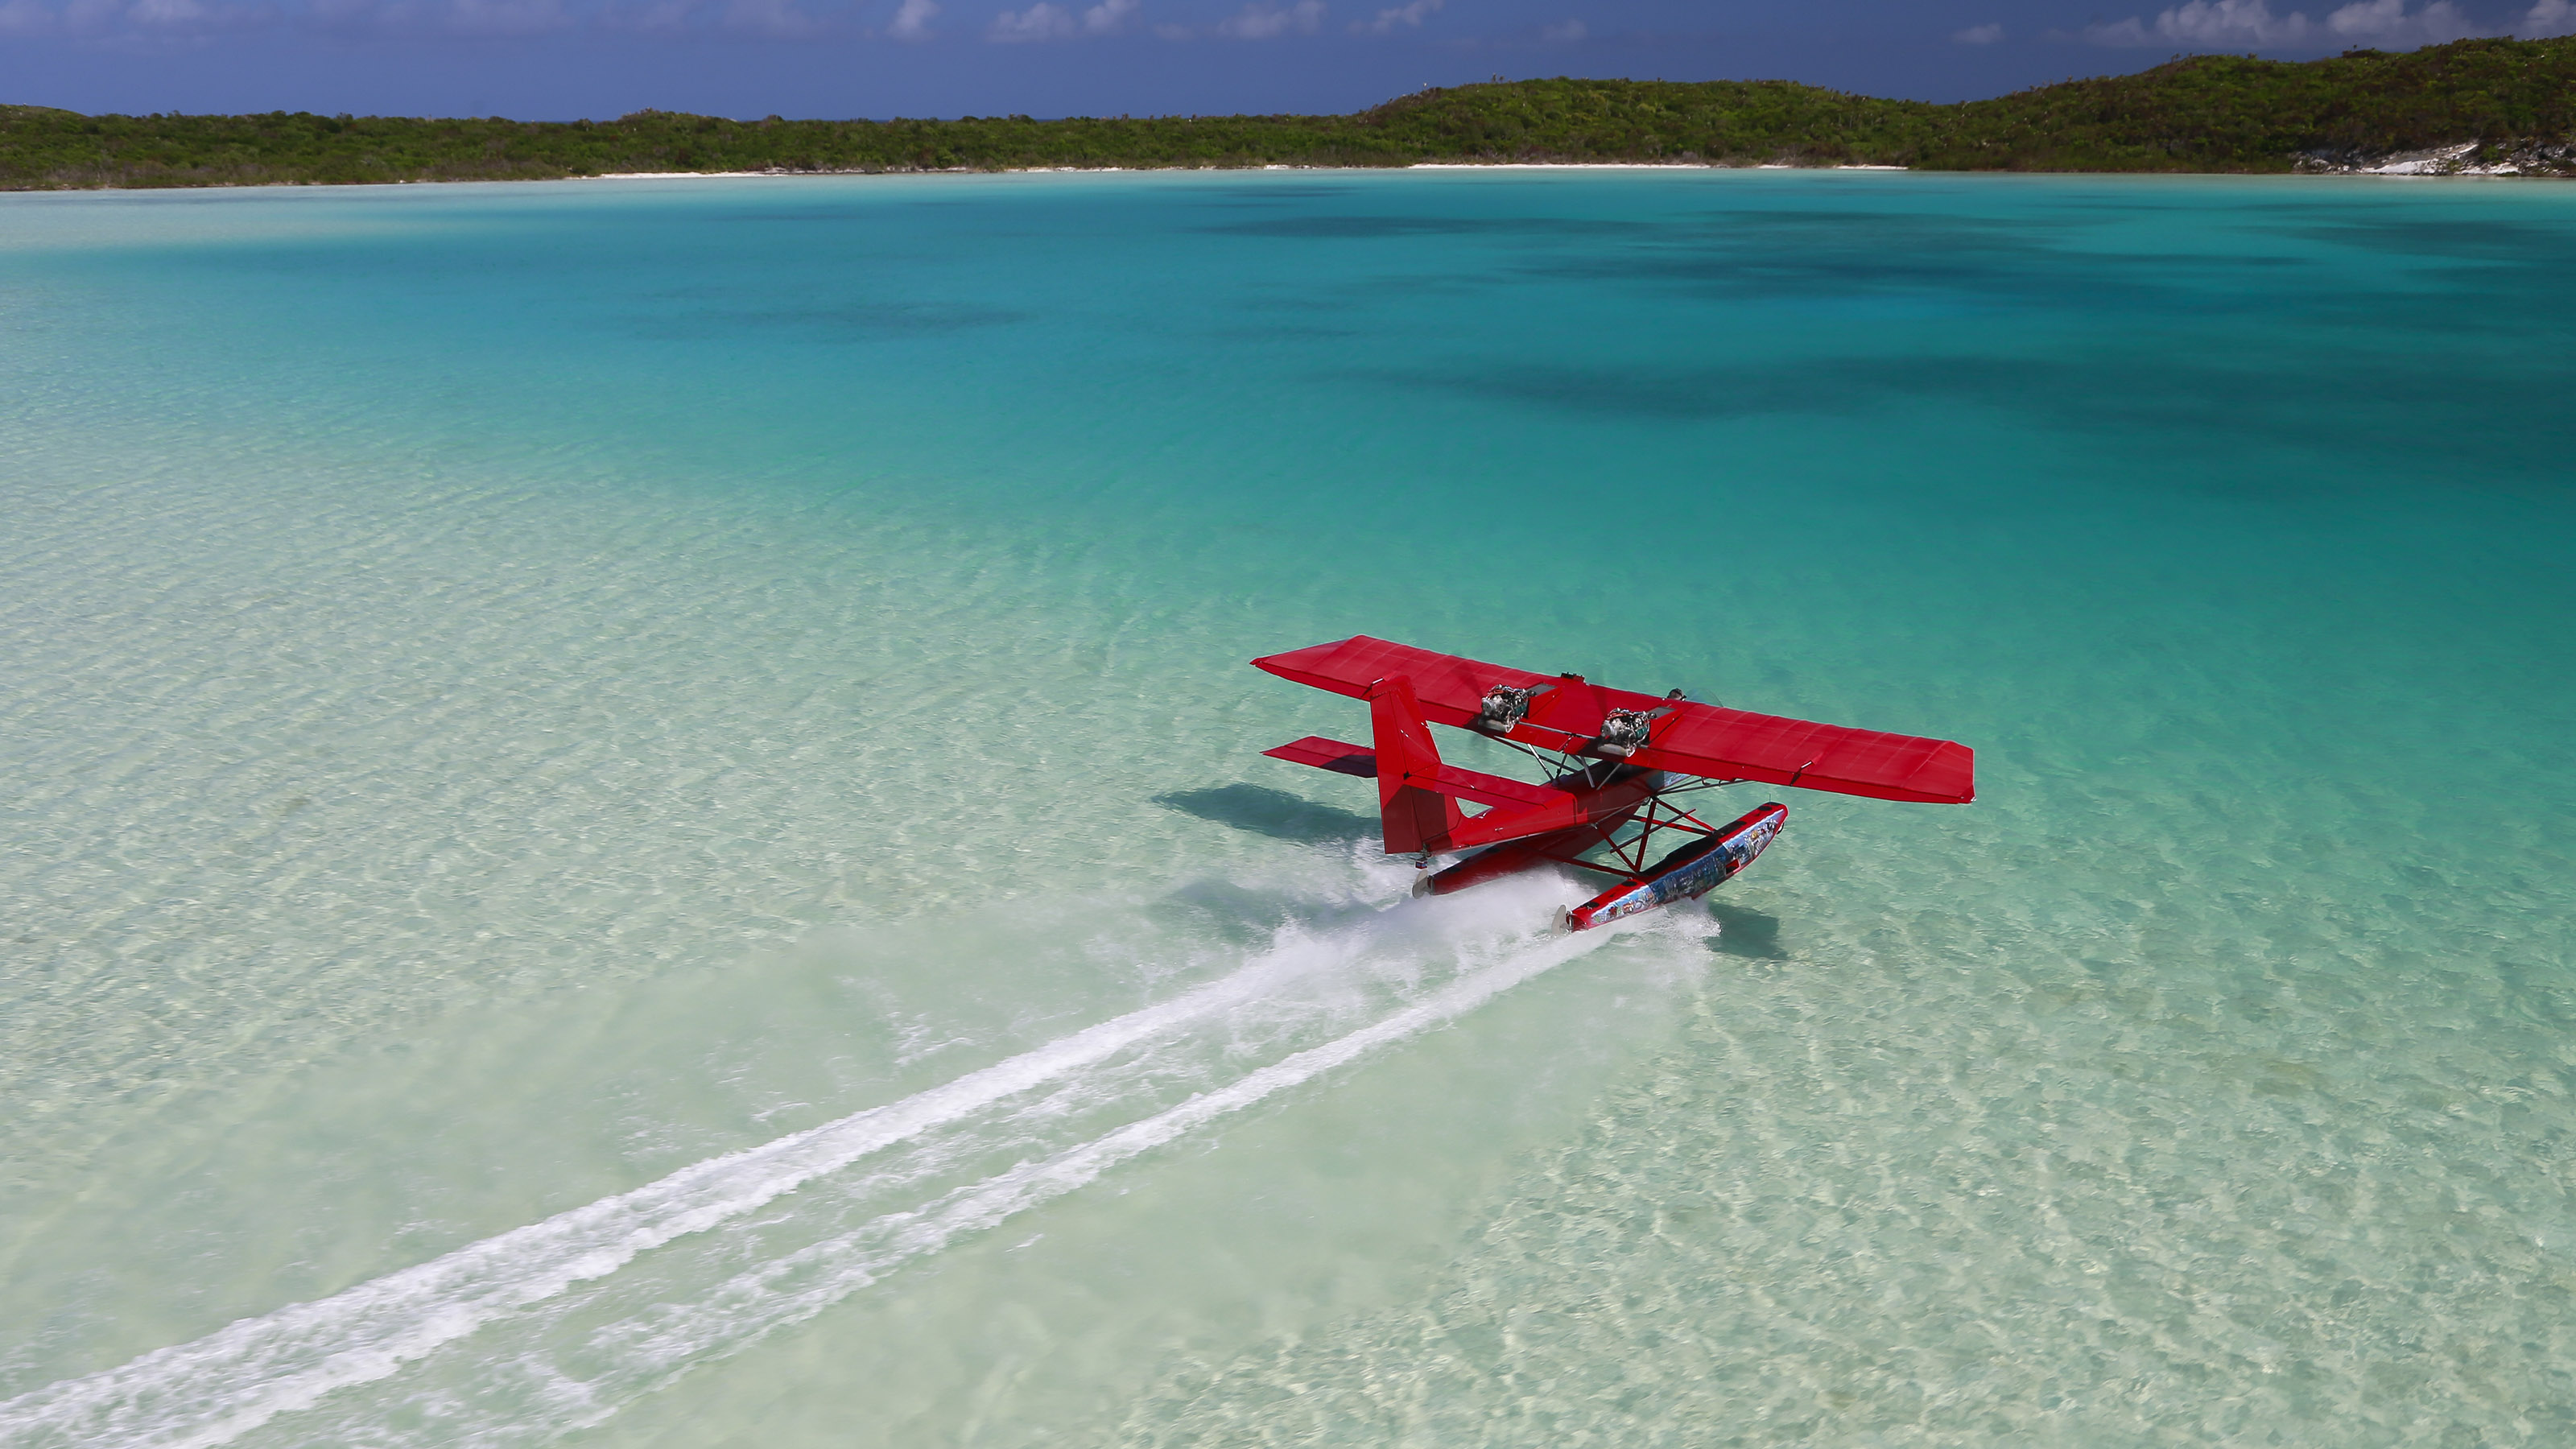 It's hard to beat the intimate view an AirCam can give you of the turquoise water and white-sand beaches in the Bahamas. Photography by Chris Rose.